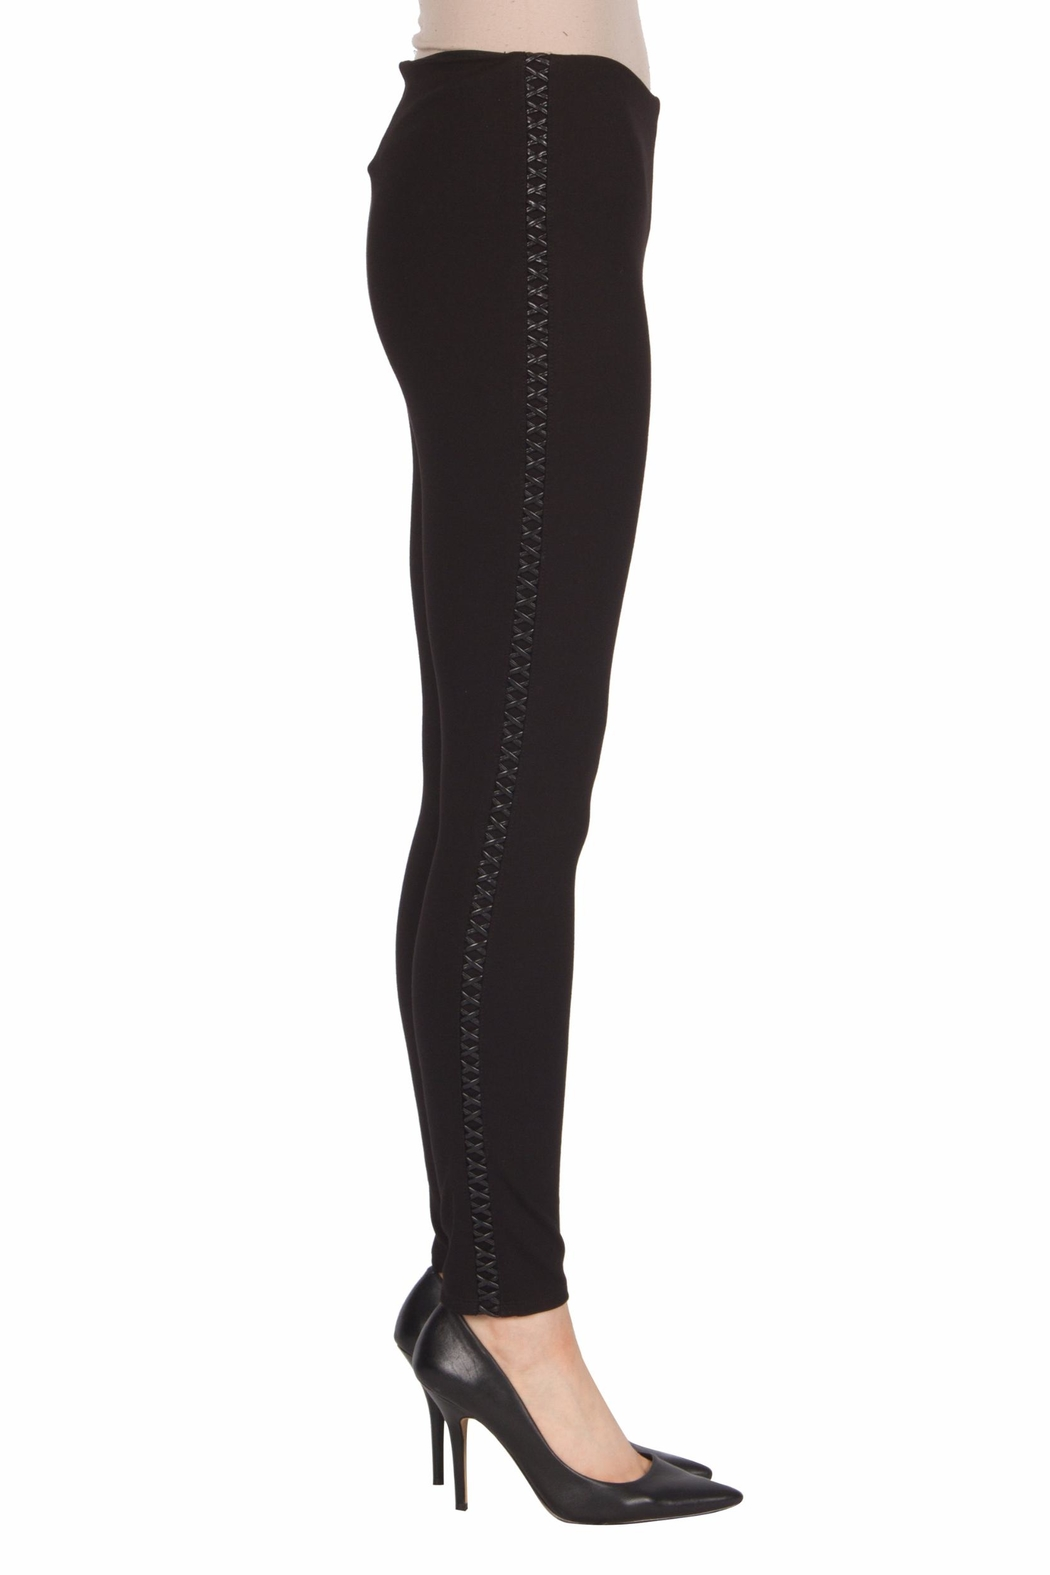 Joseph Ribkoff Faux-Leather Trimmed Pant - Front Full Image